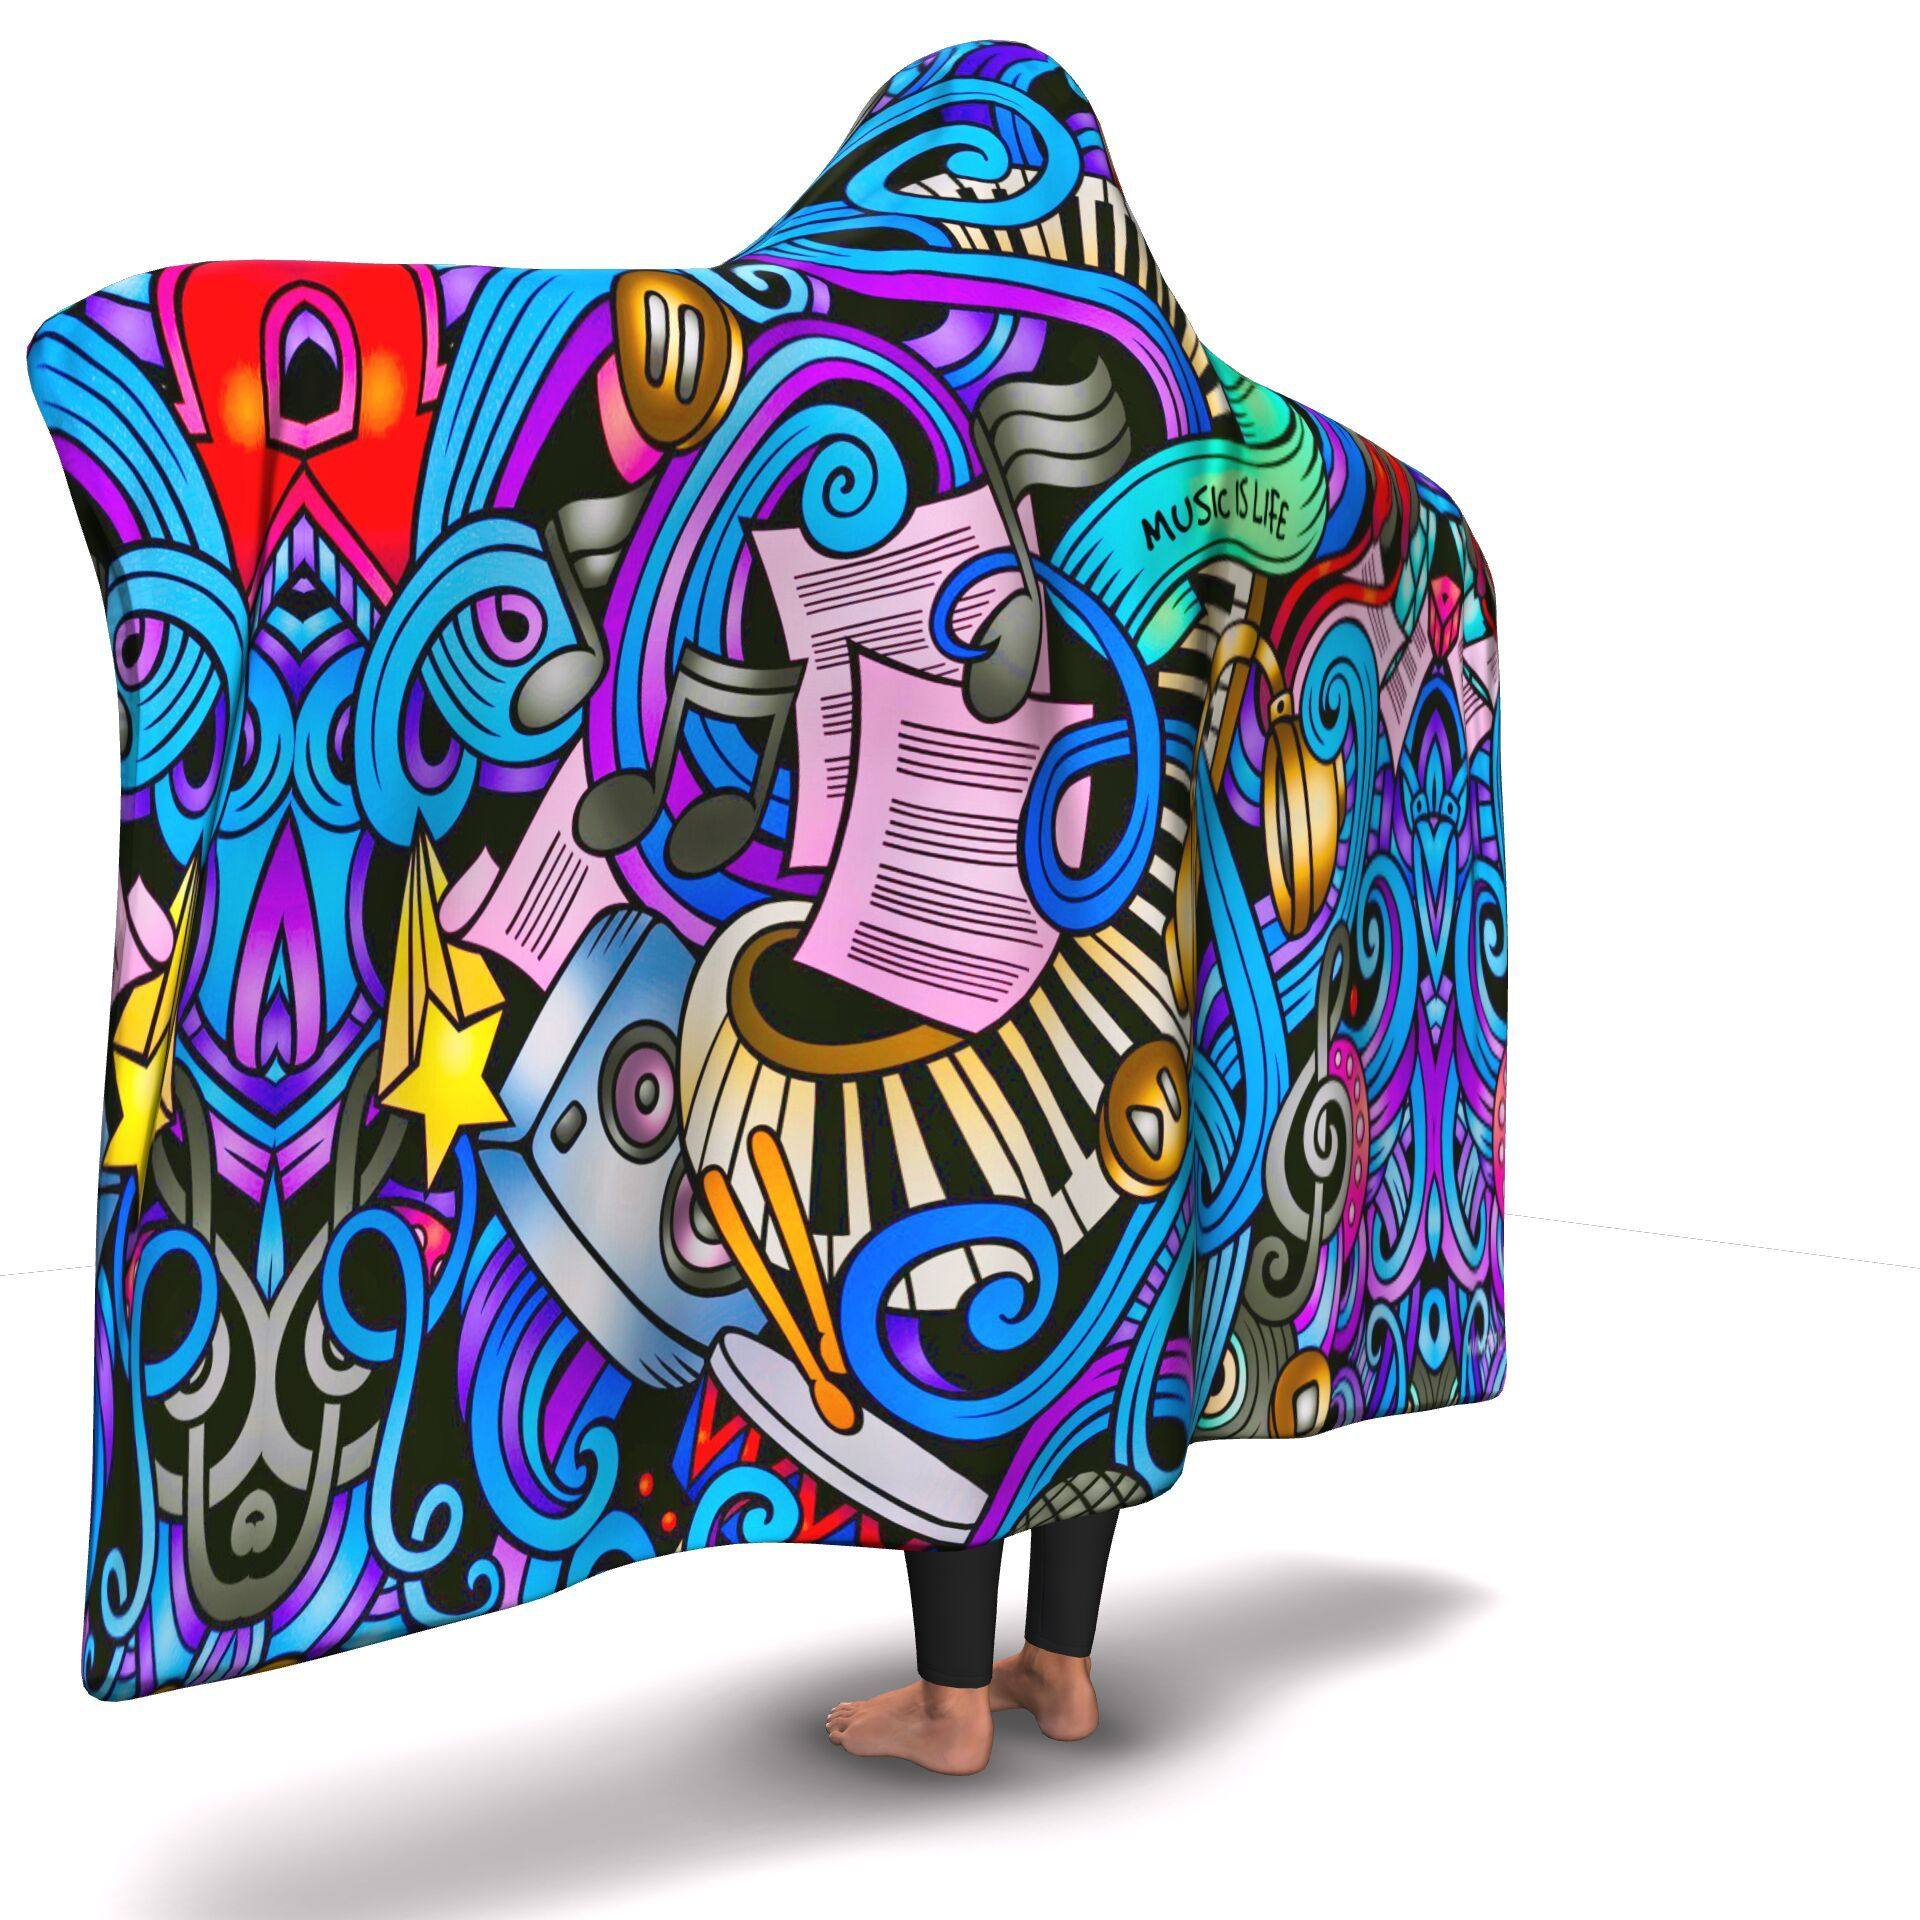 MUSIC IS LIFE HOODED BLANKET